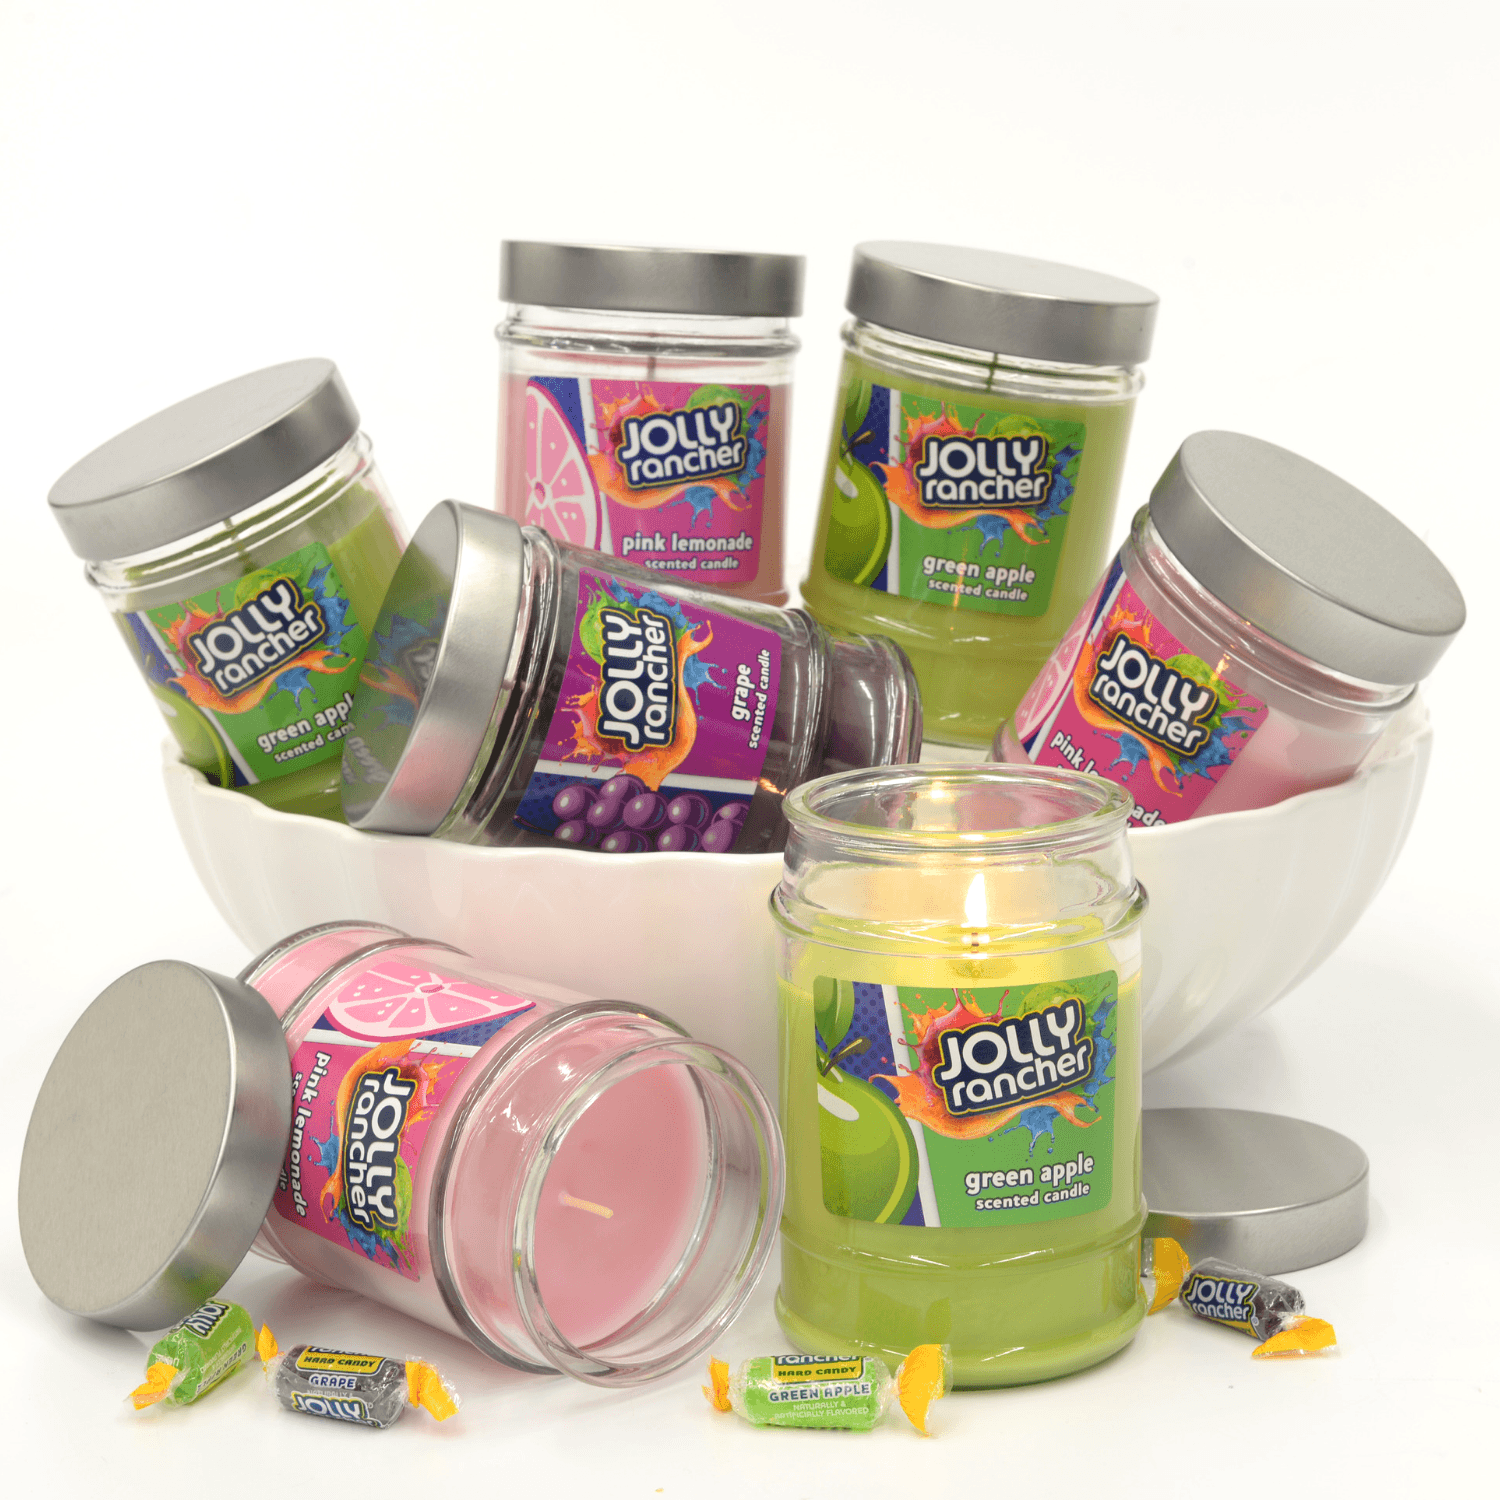 Jolly Rancher Grape Scented Canister Jar Candle Candles Candlemart.com $ 9.99